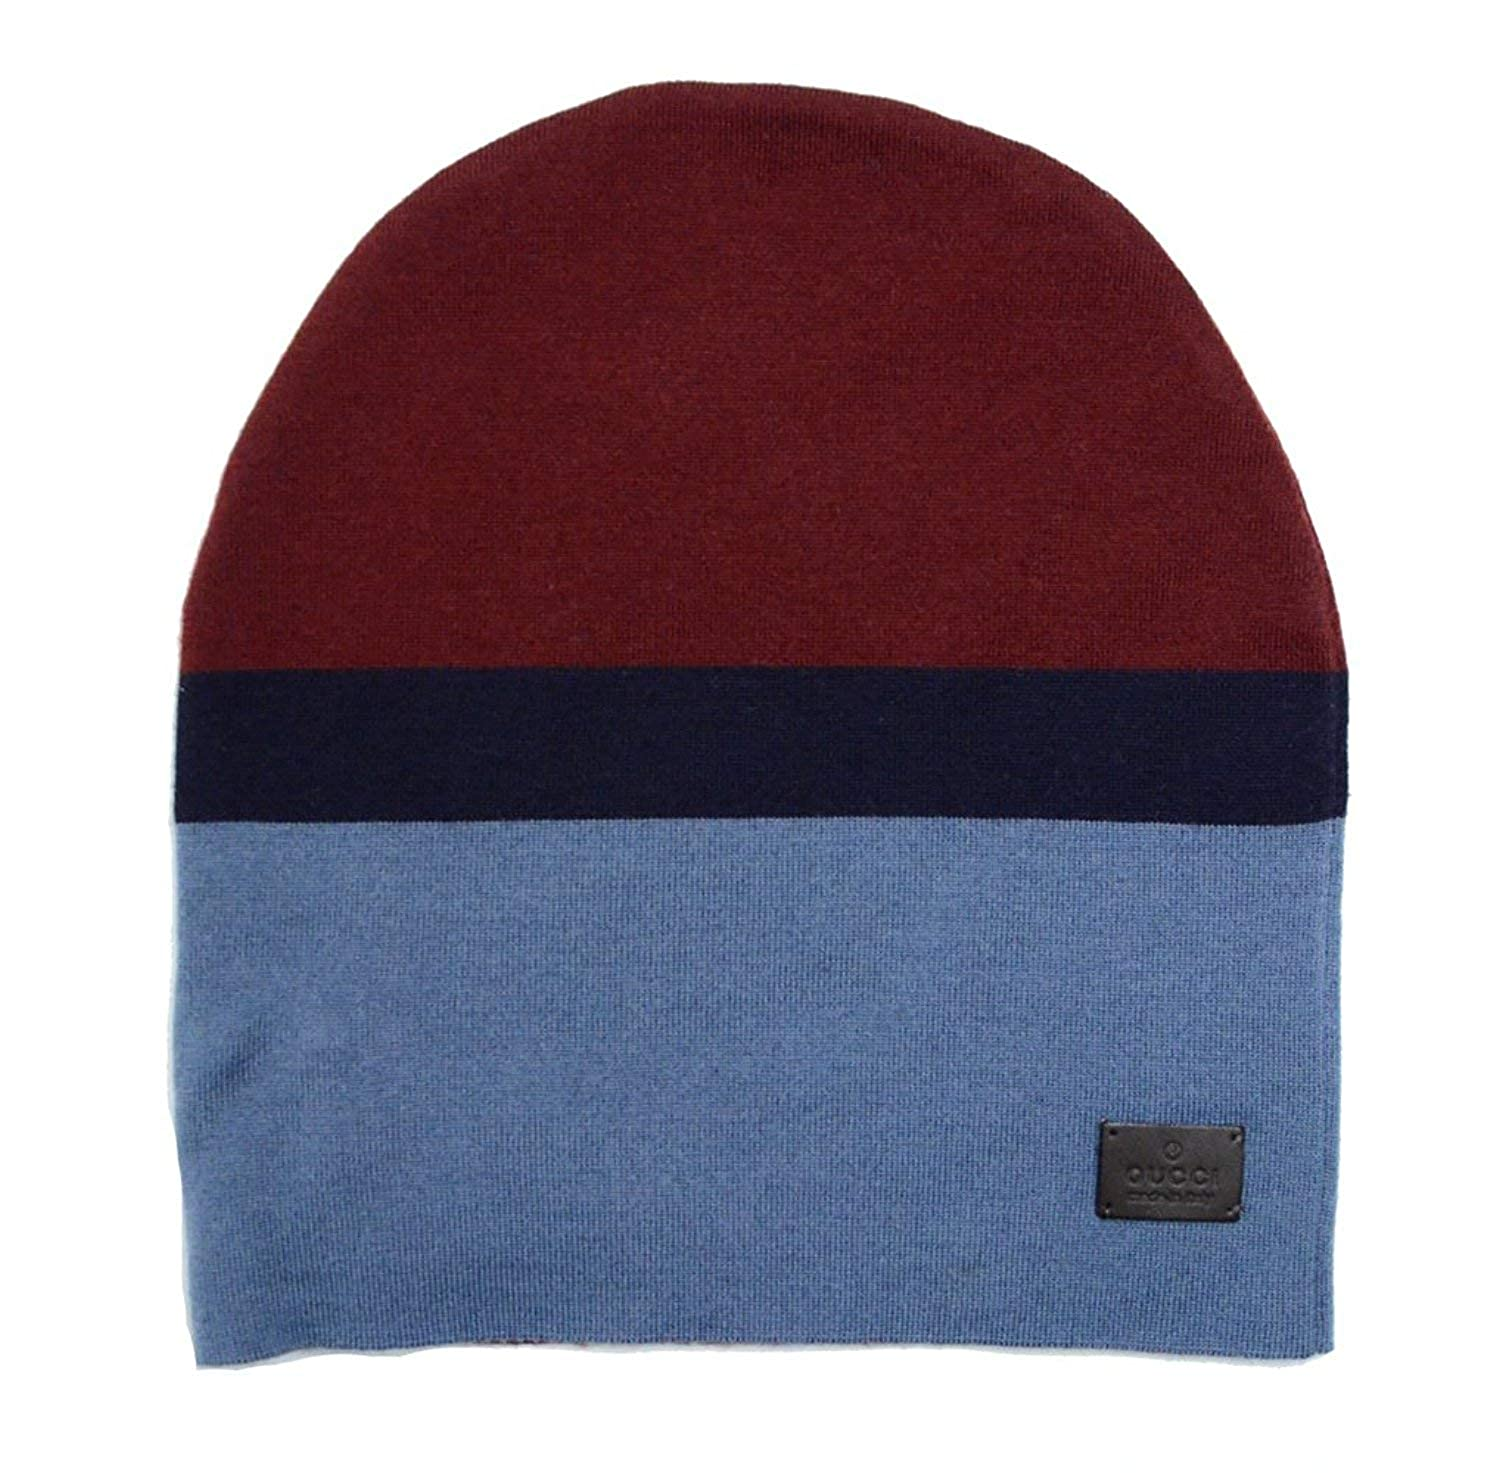 Amazon.com  Gucci Unisex Burgundy Blue Wool Beanie Hat 353999 6068  Clothing e2f1622d620